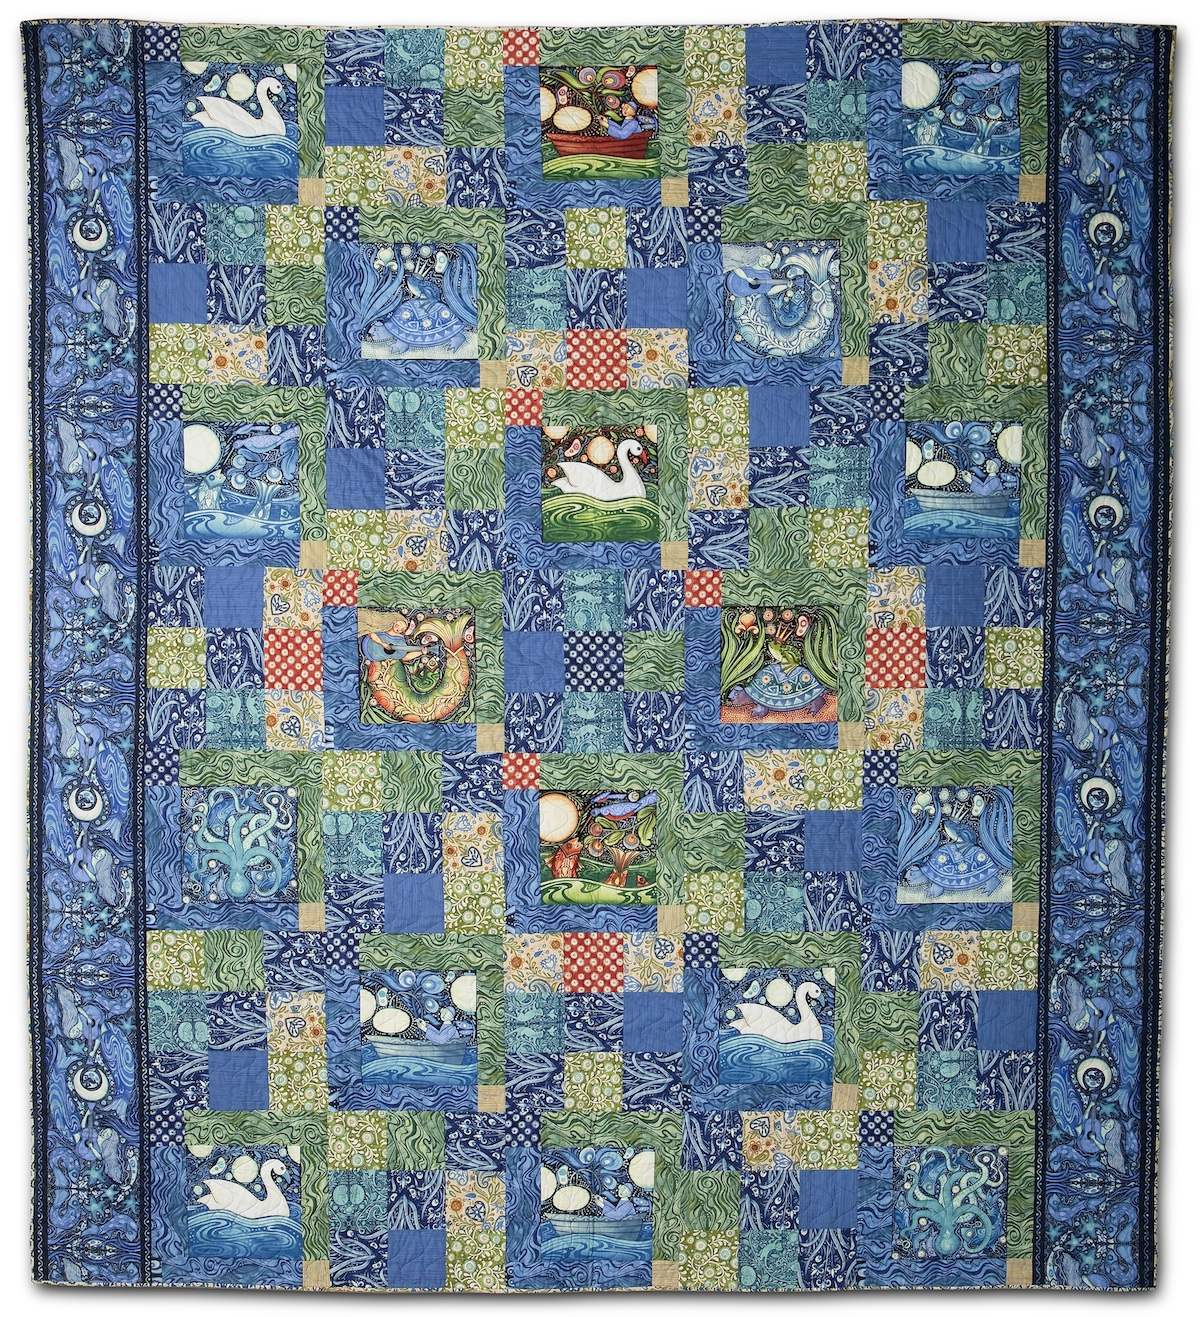 quilts julie paschkis